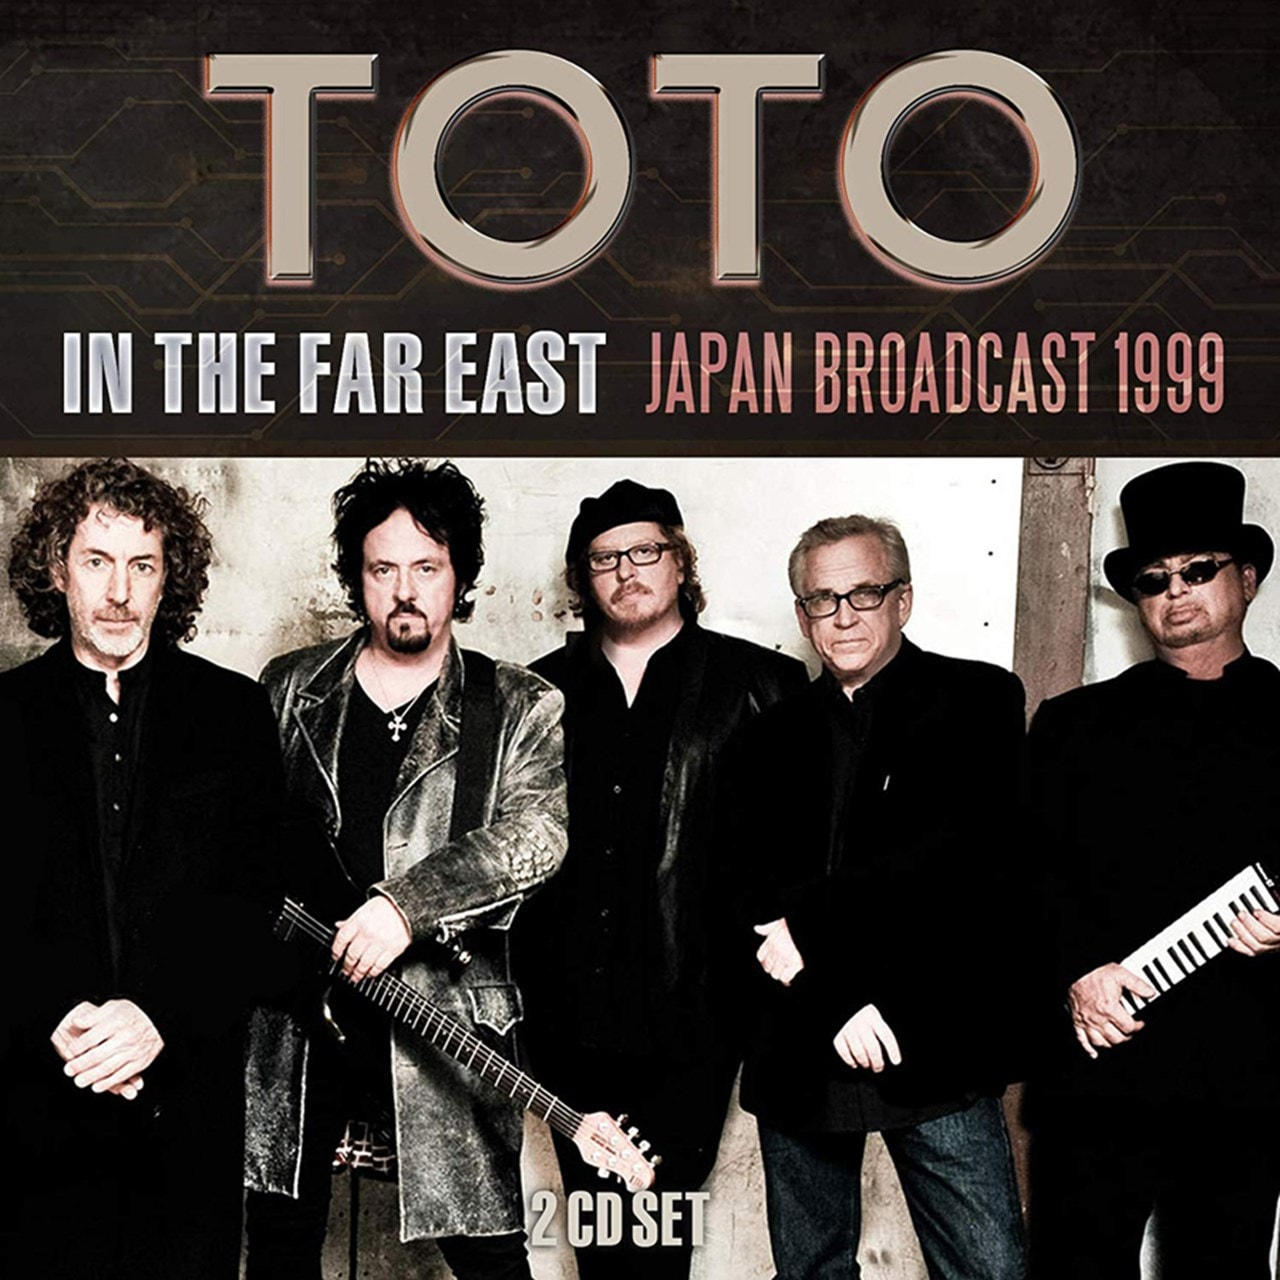 In the Far East: Japan Broadcast 1999 - 1